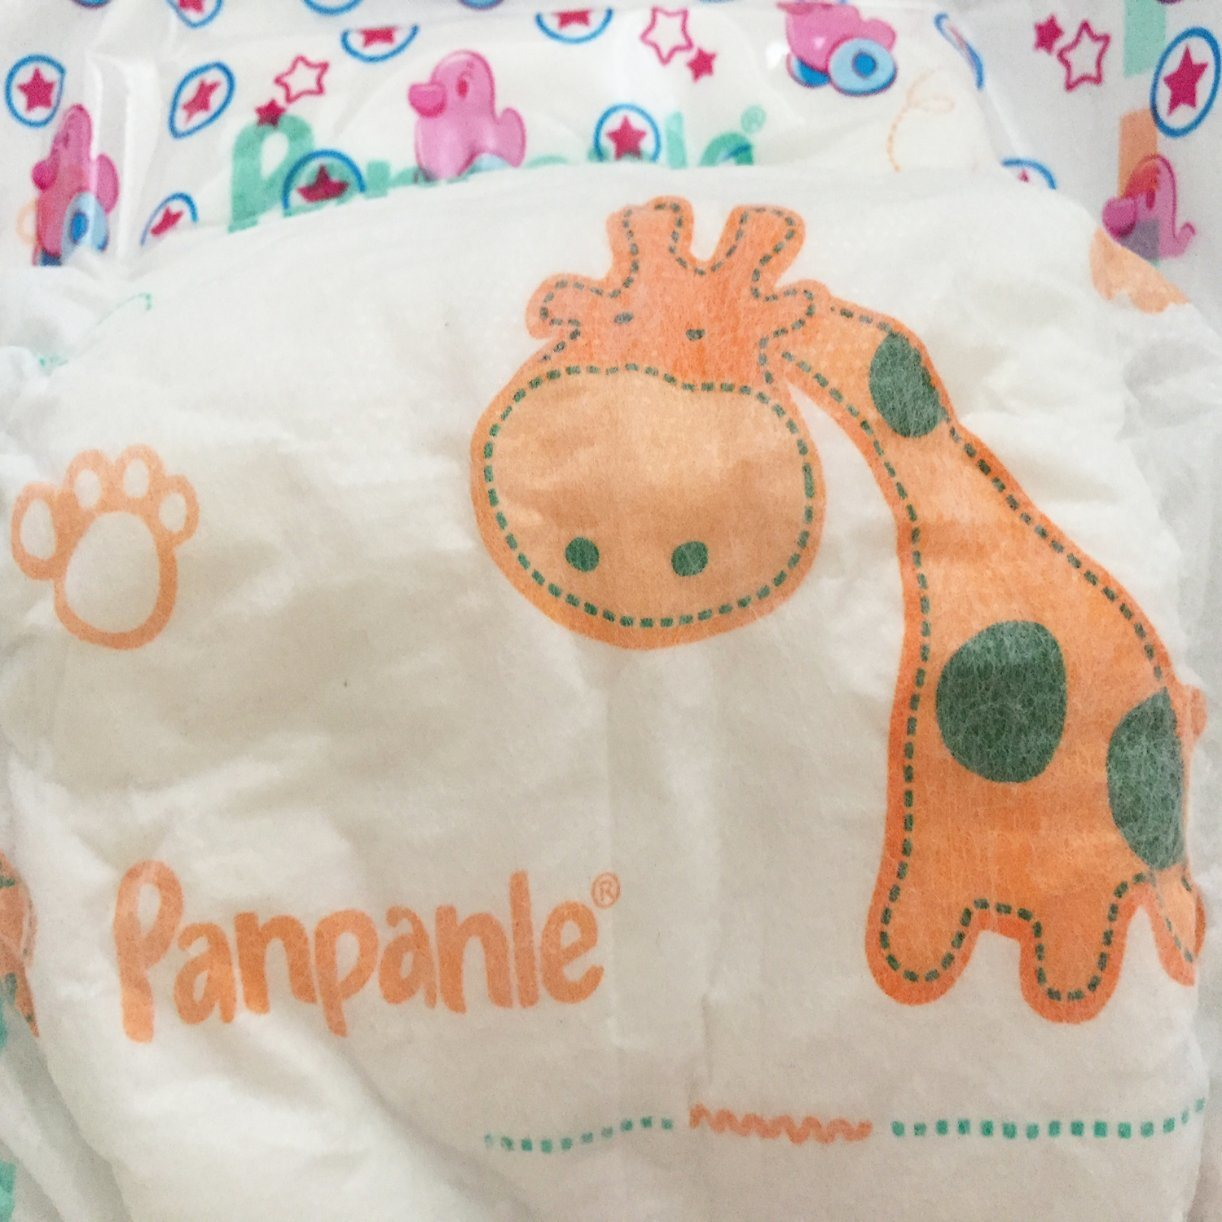 Baby Diaper New Backsheet Baby Nappy Disposable Pad Underware